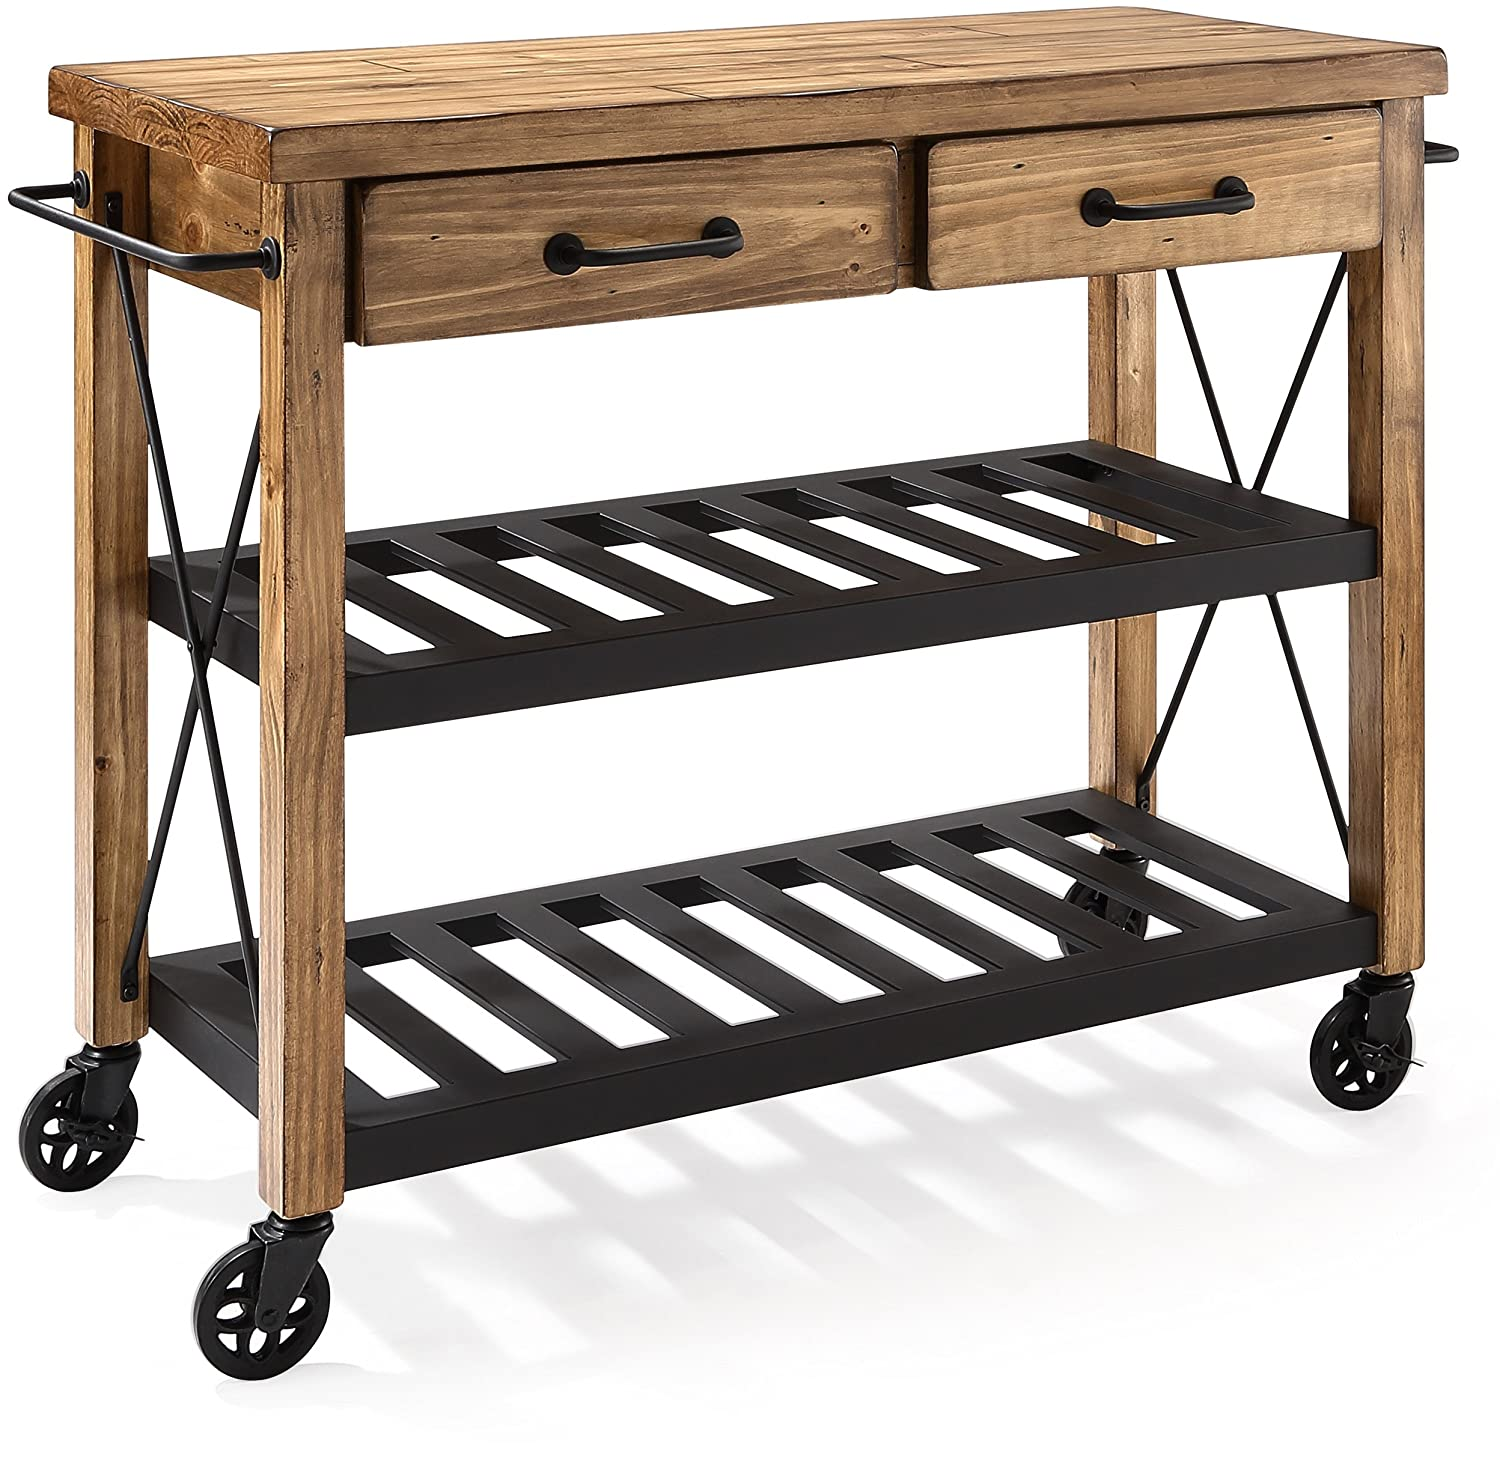 Crosley Furniture Roots Rack Industrial Rolling Kitchen Cart - Natural